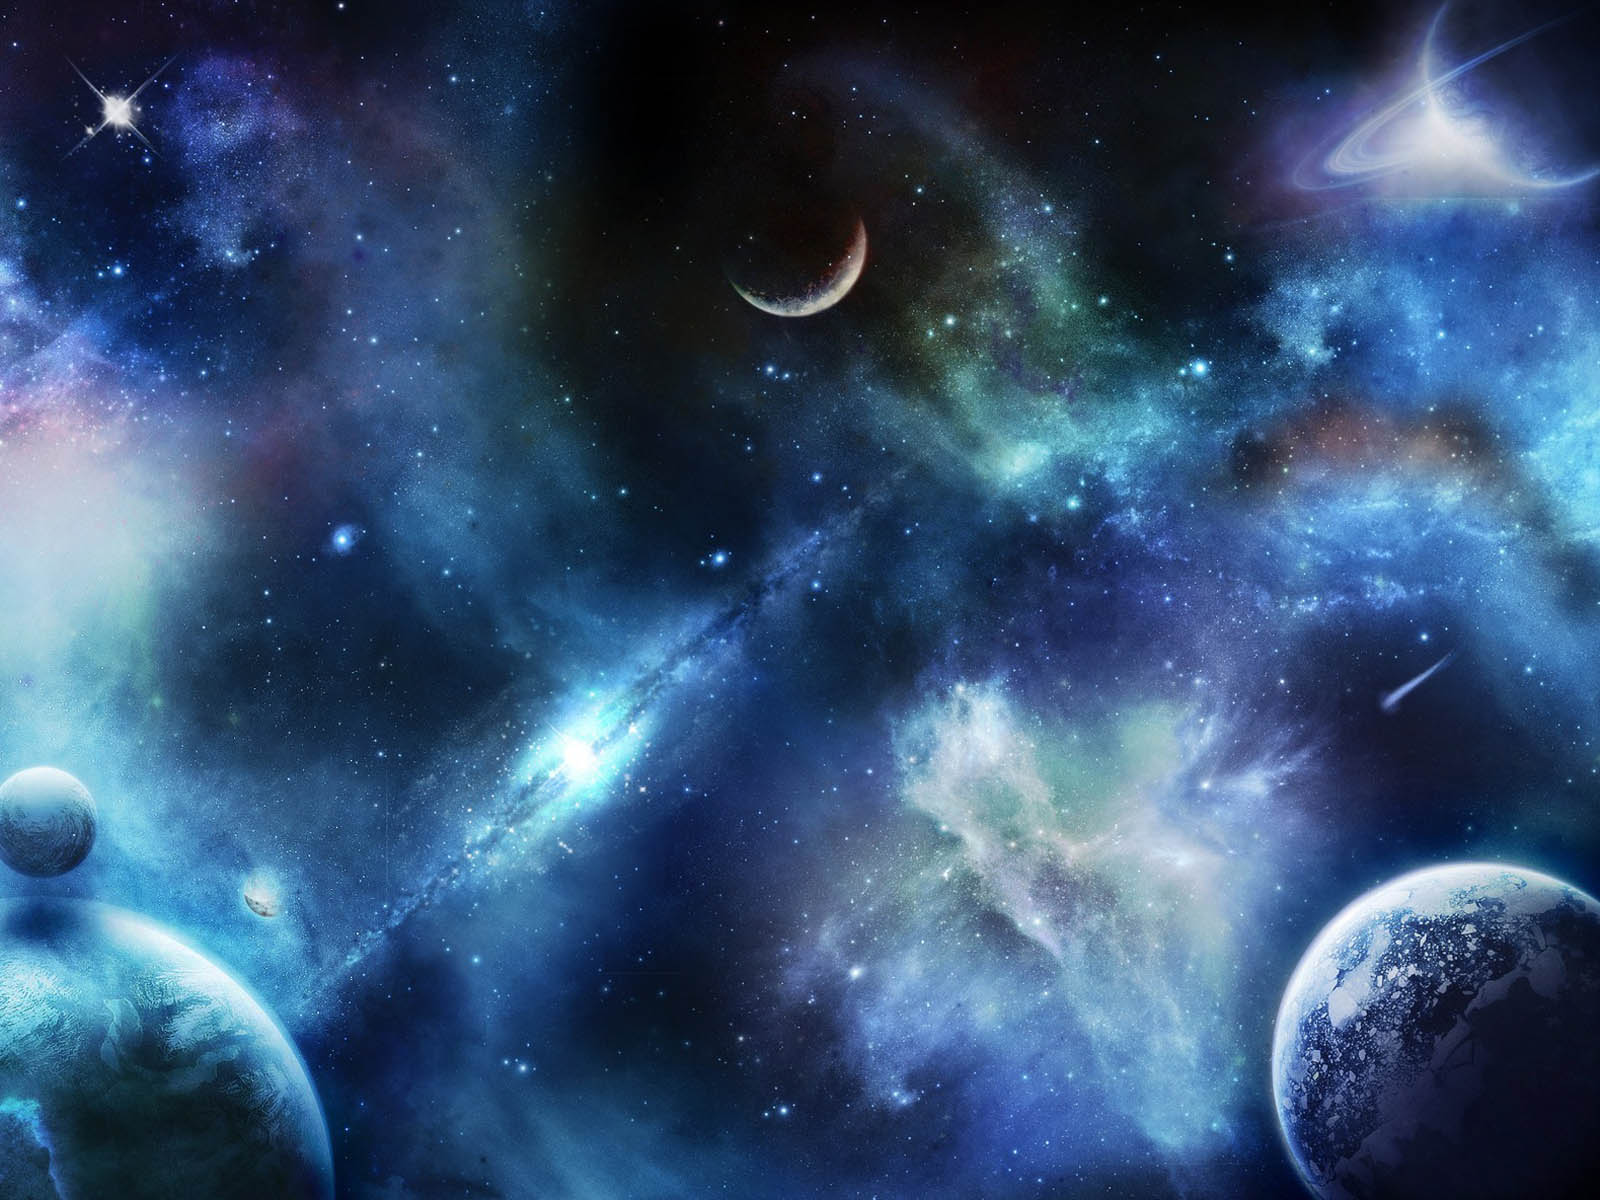 real planets and stars background - photo #8